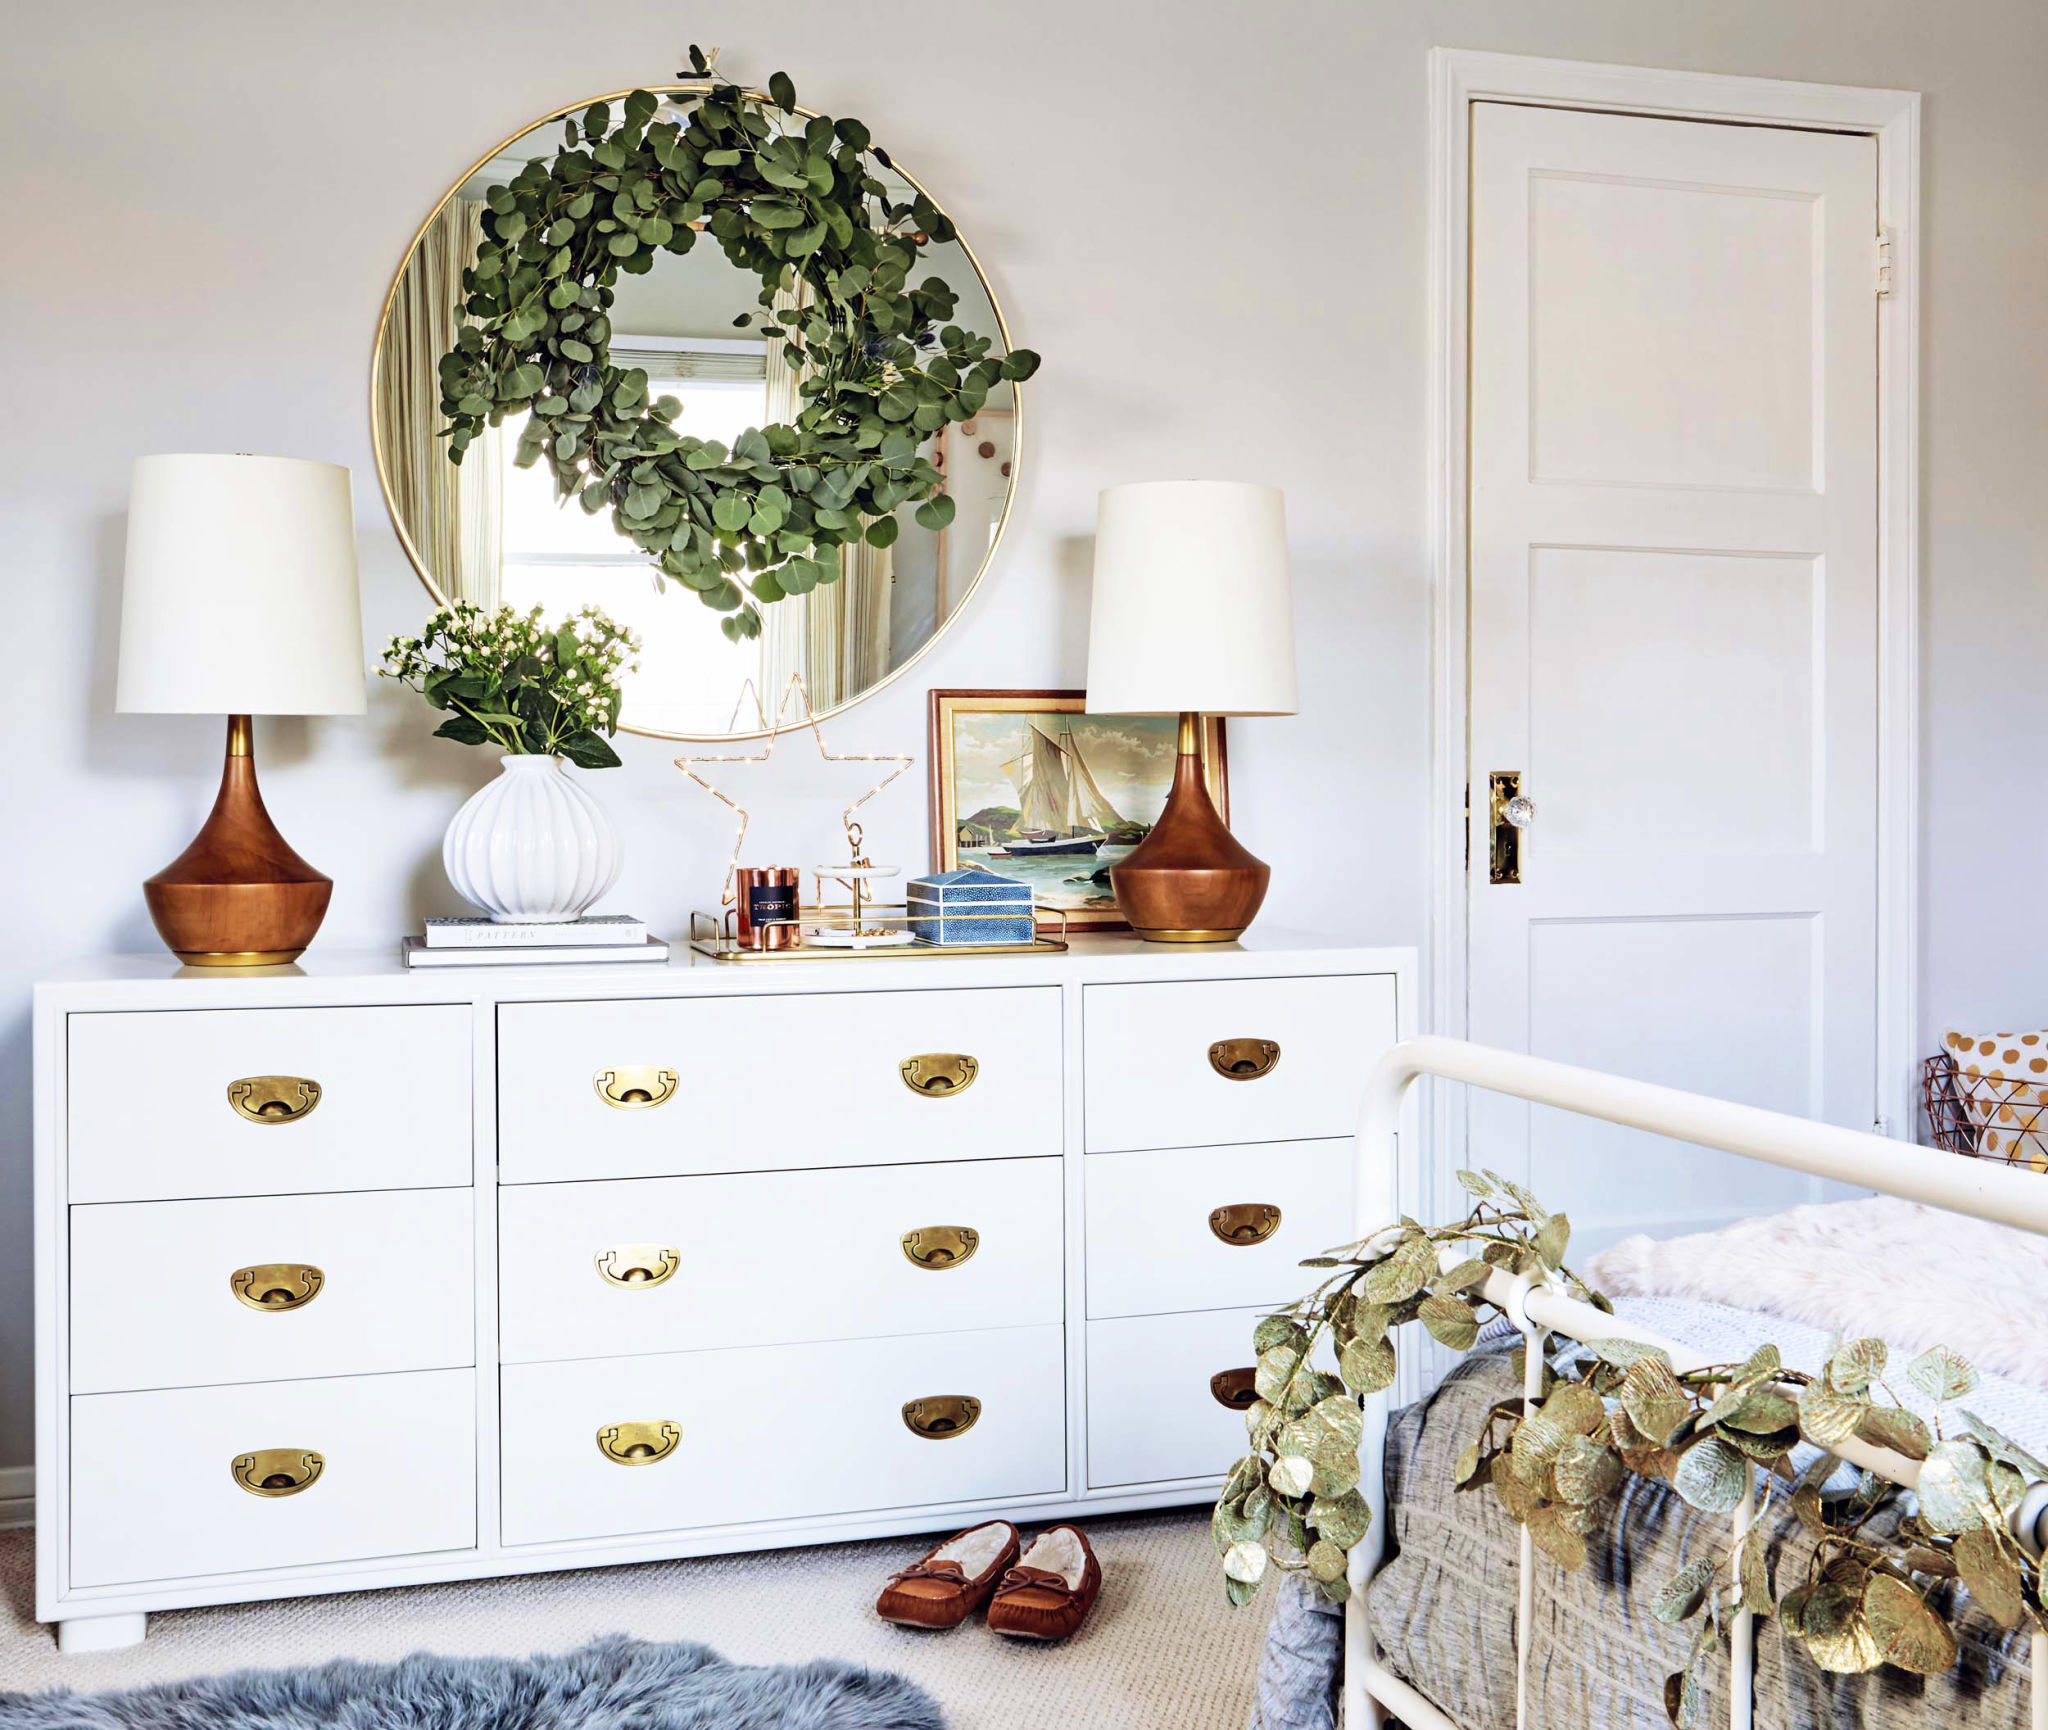 GINNY_MACDONALD_HOLIDAY_BEDROOM_13